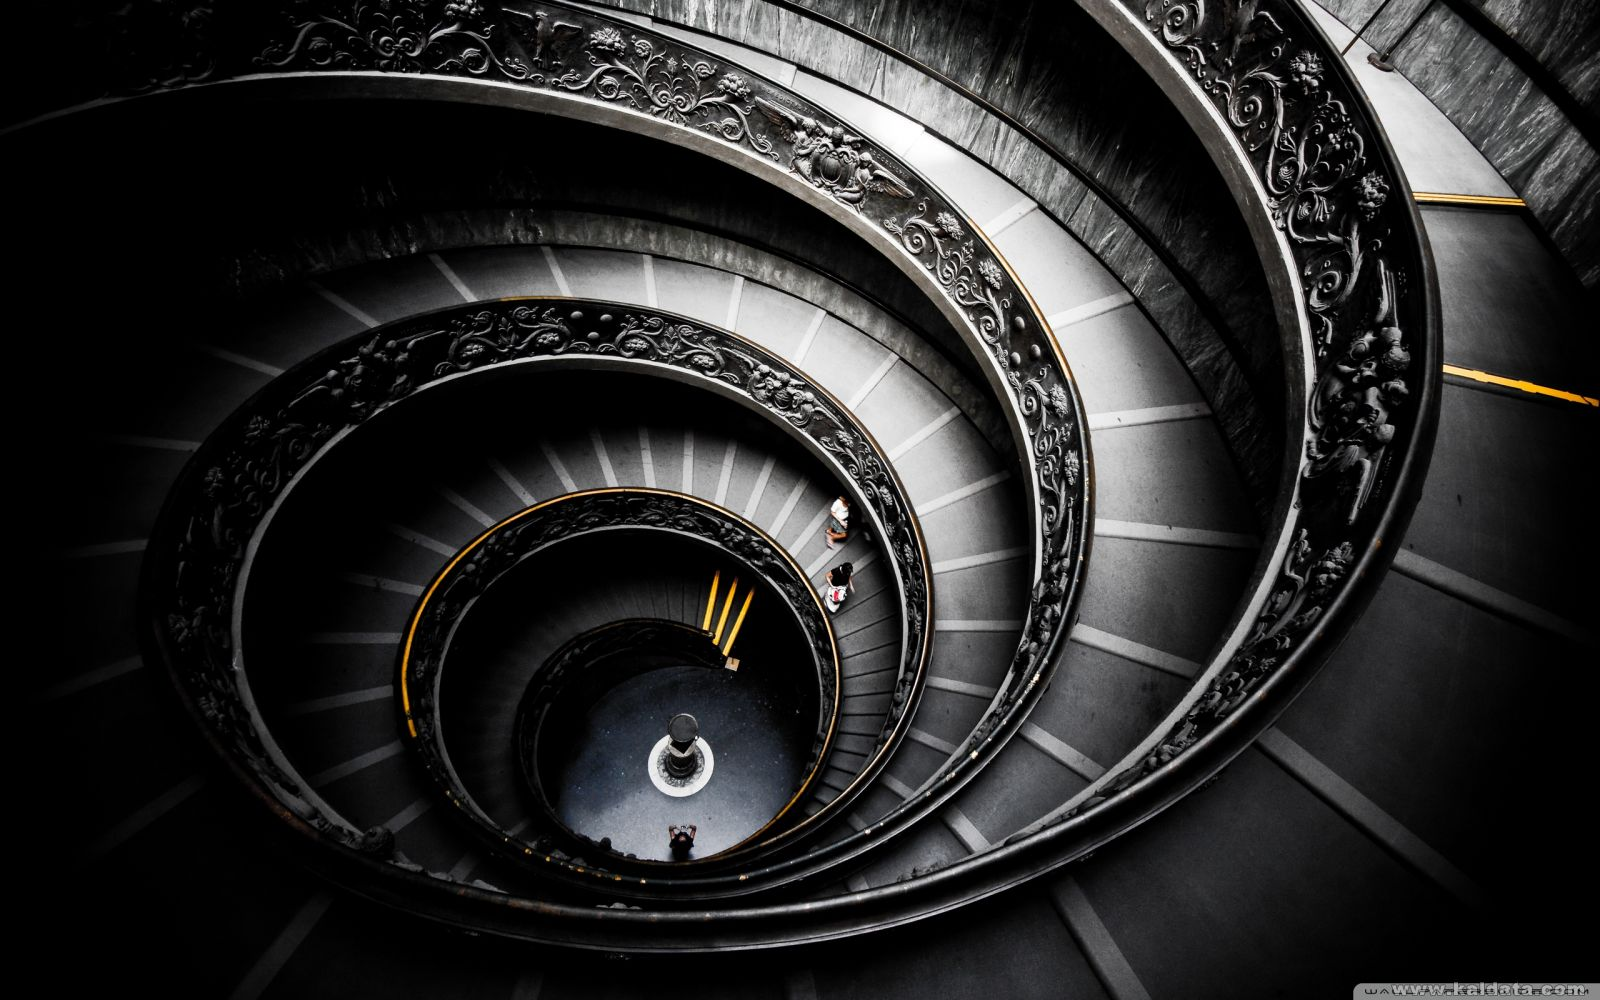 spiral stairs vatican museums 31155